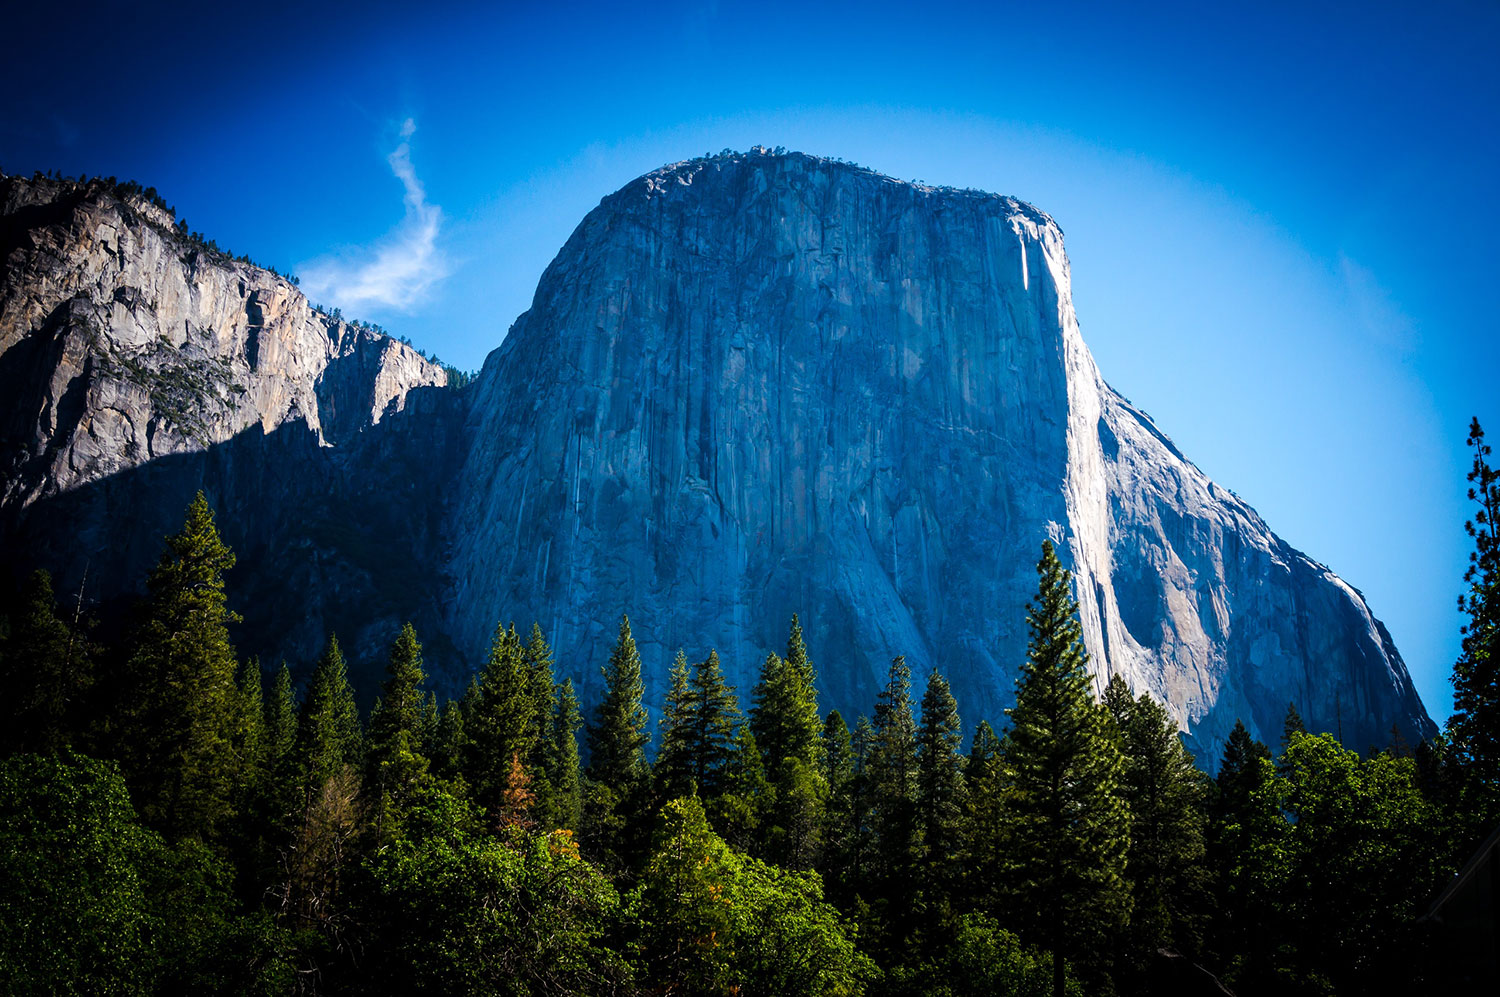 Man and woman fall to death from Yosemite National Park cliff  BBC - October 26, 2018